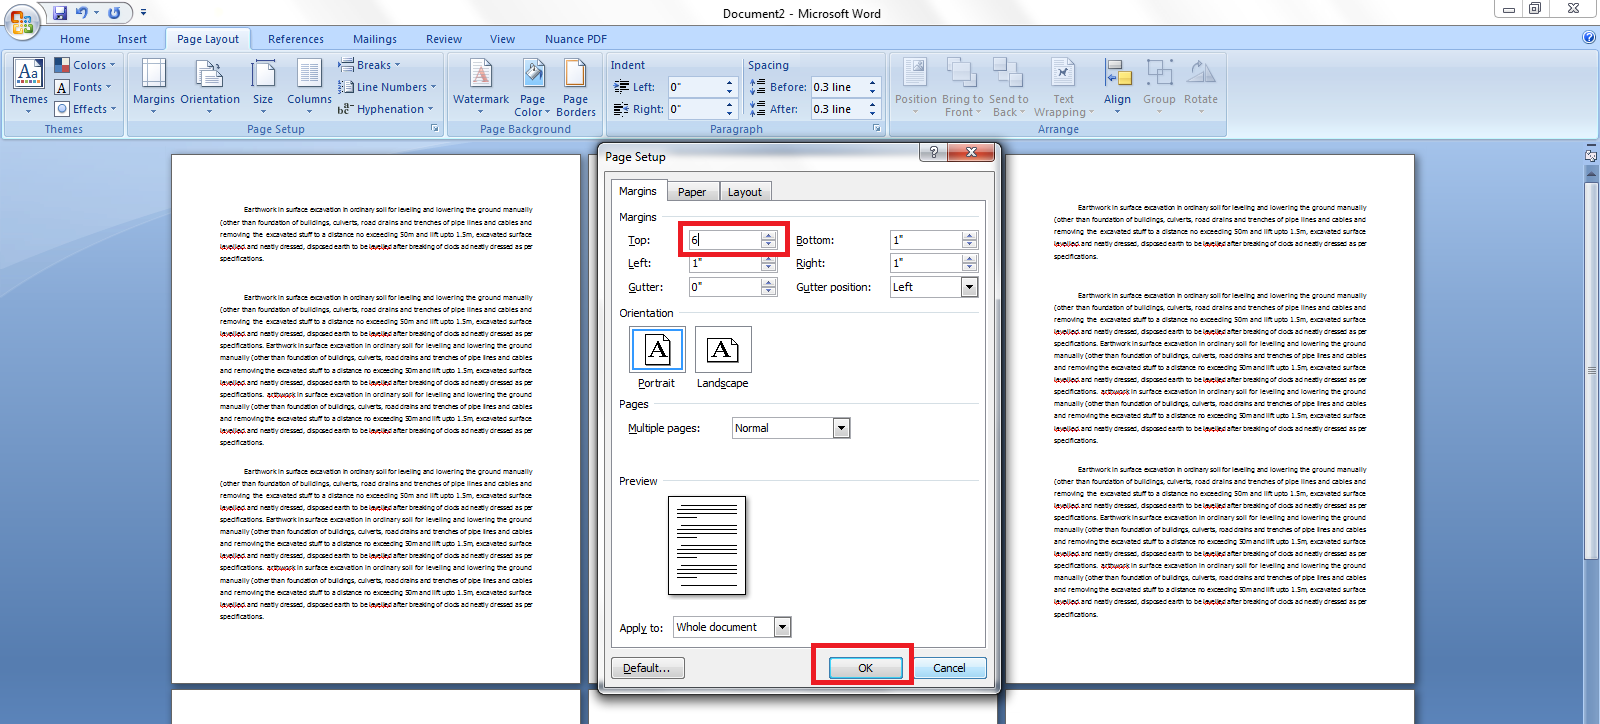 How to give different page setup margin in same word document